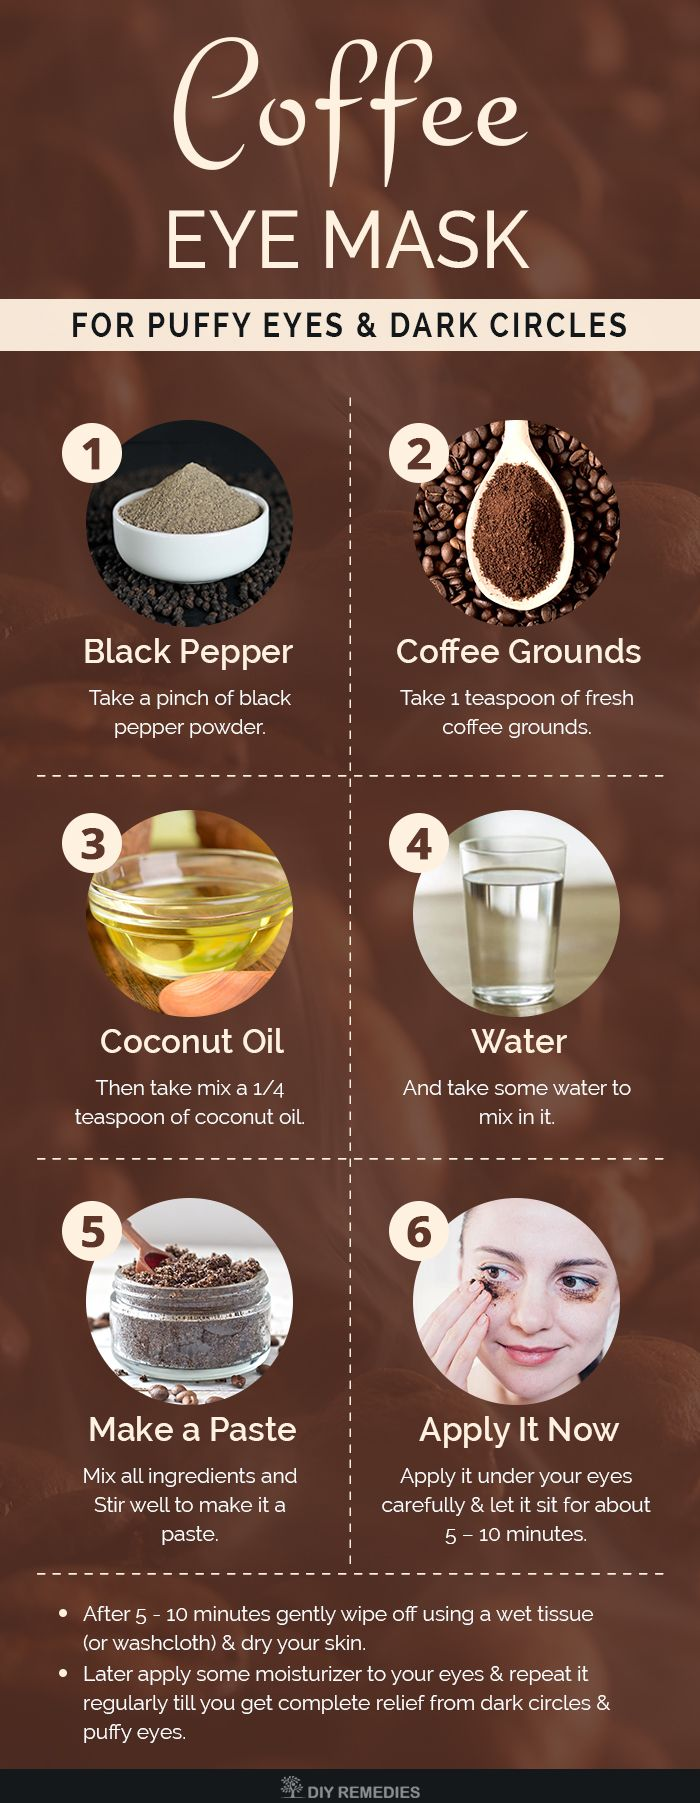 DIY Coffee Eye Mask for Puffy Eyes and Dark Circles Coffee grounds has antioxidant and anti-inflammatory properties that reduce your inflammation of your eyes and tighten the skin. Black pepper stimulates the blood circulation and proper oxygen supply to the eyes. Pin now, thank me later!